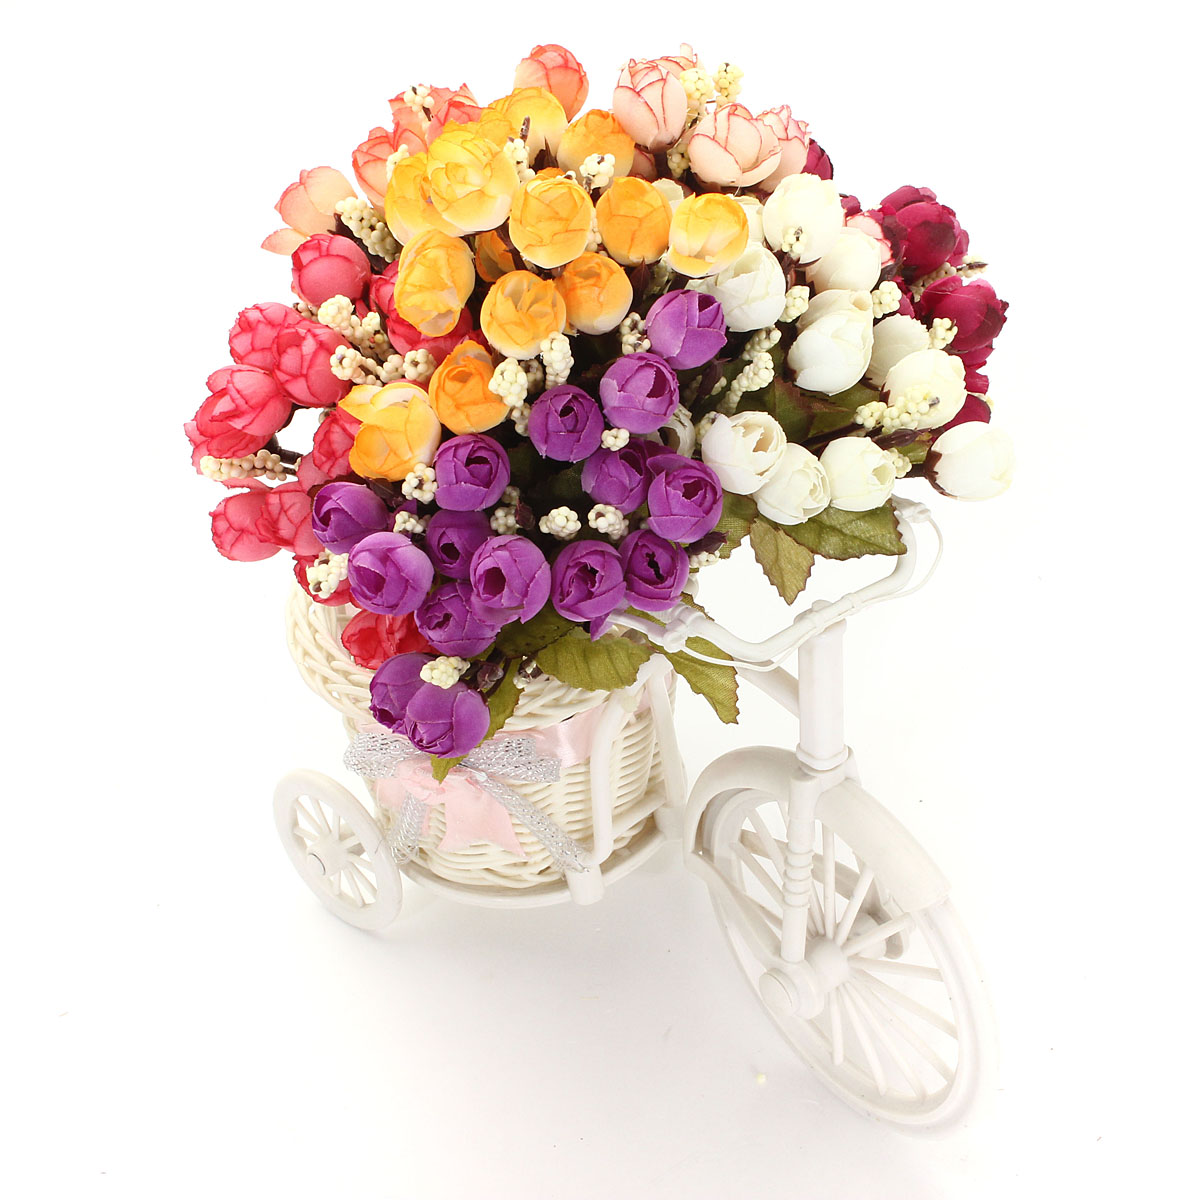 15 Heads Artificial Rose Silk Flower Bonquet Home Wedding Party Bridal Decoration